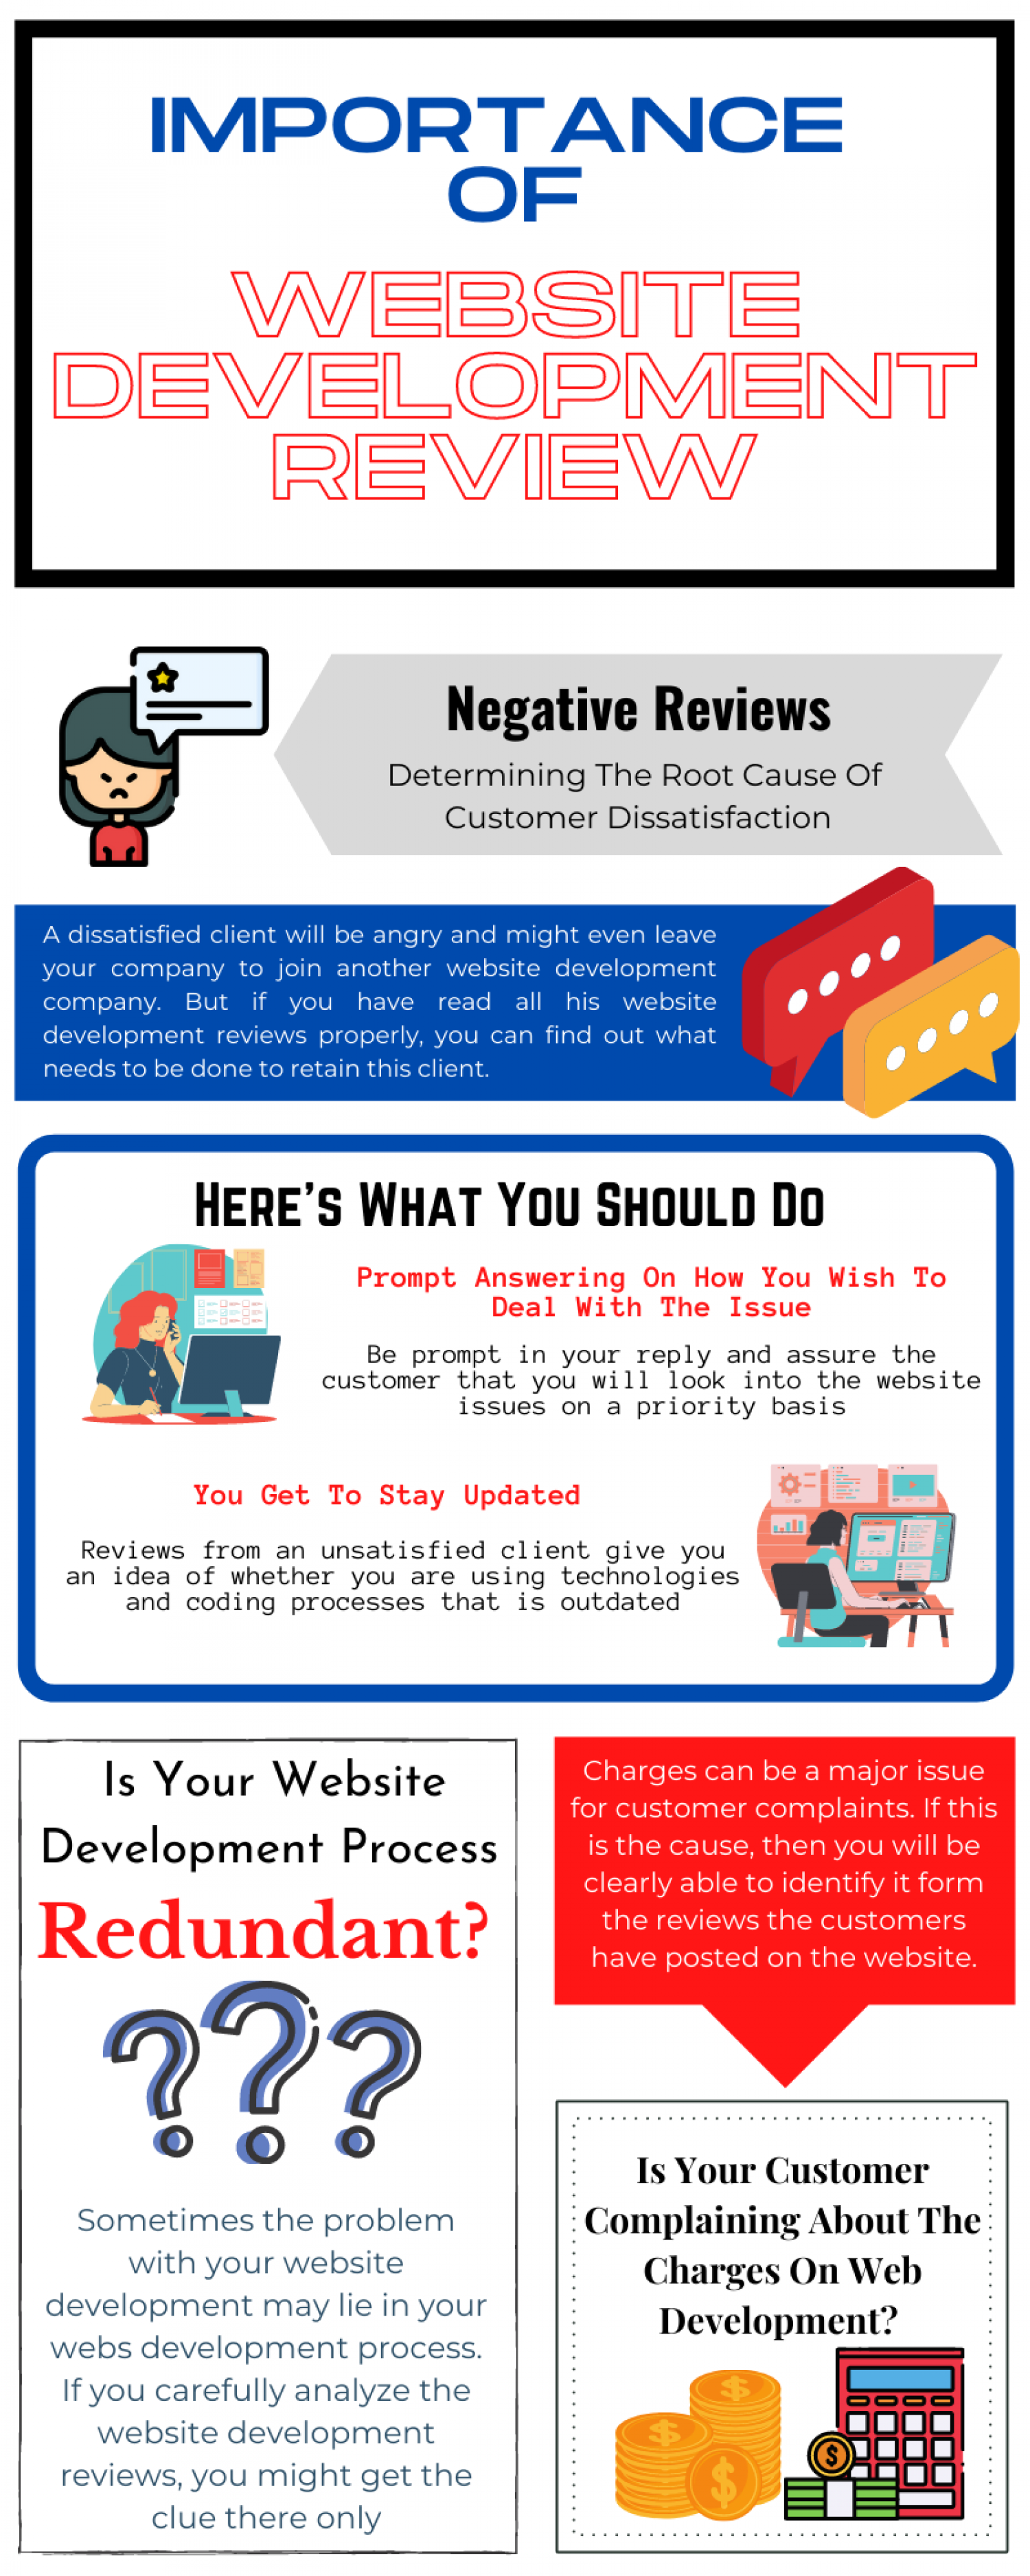 Importance Of Website Development Review Infographic